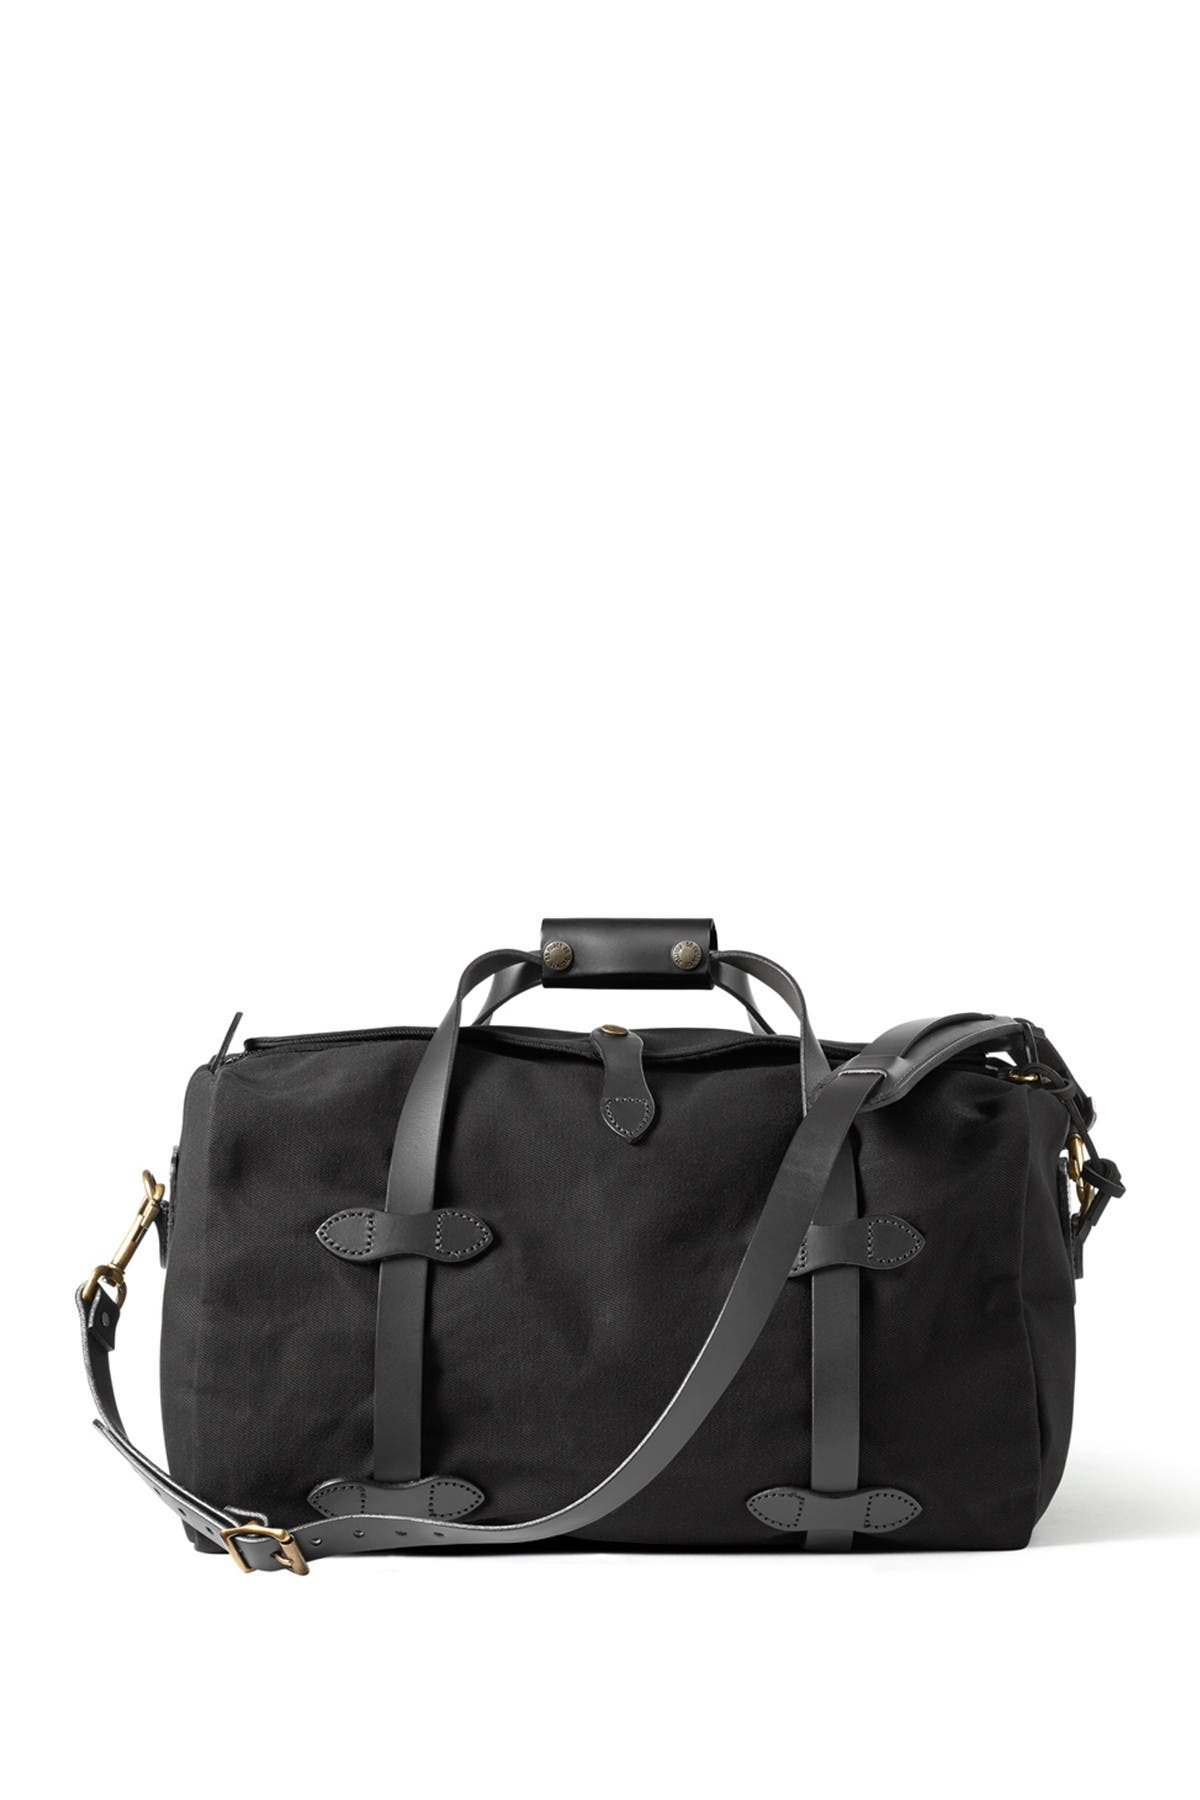 Image of Filson Small Leather Trimmed Duffel Bag